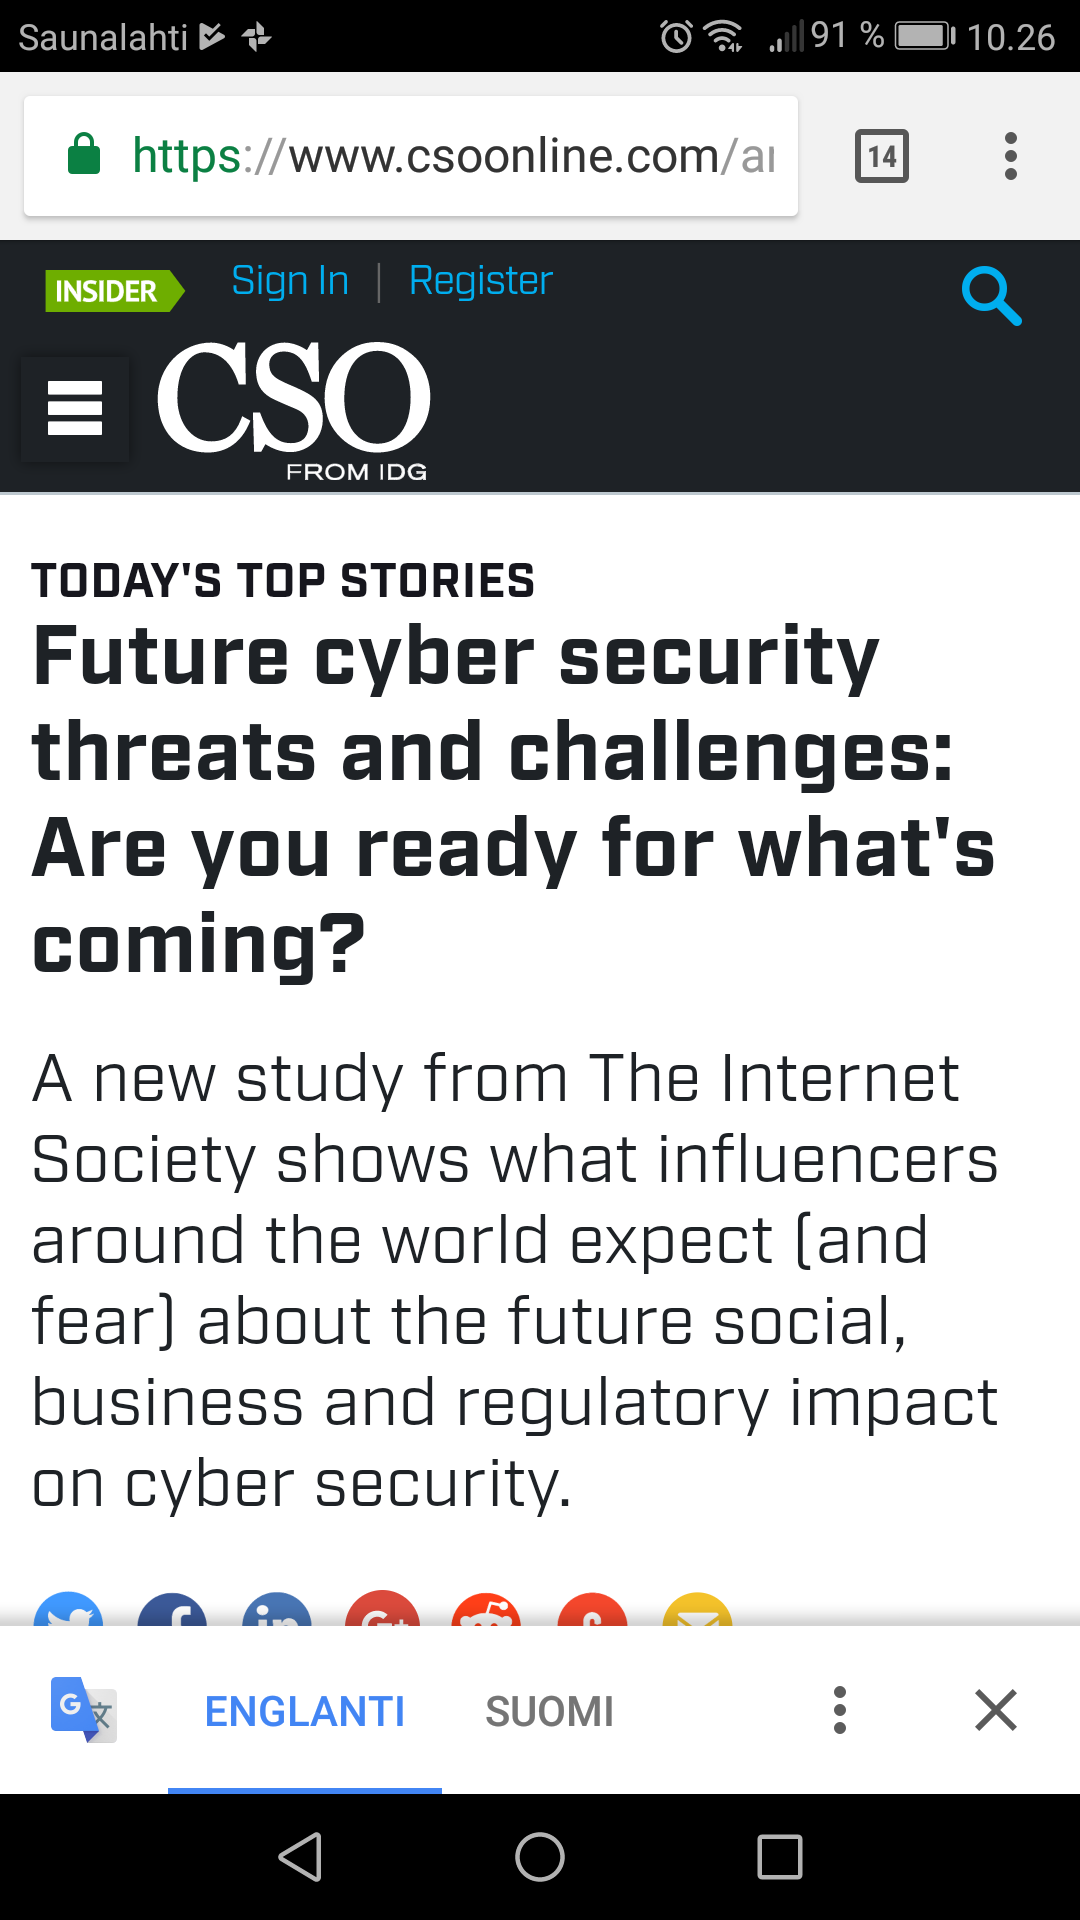 Future cyber security threats and challenges: Are you ready for